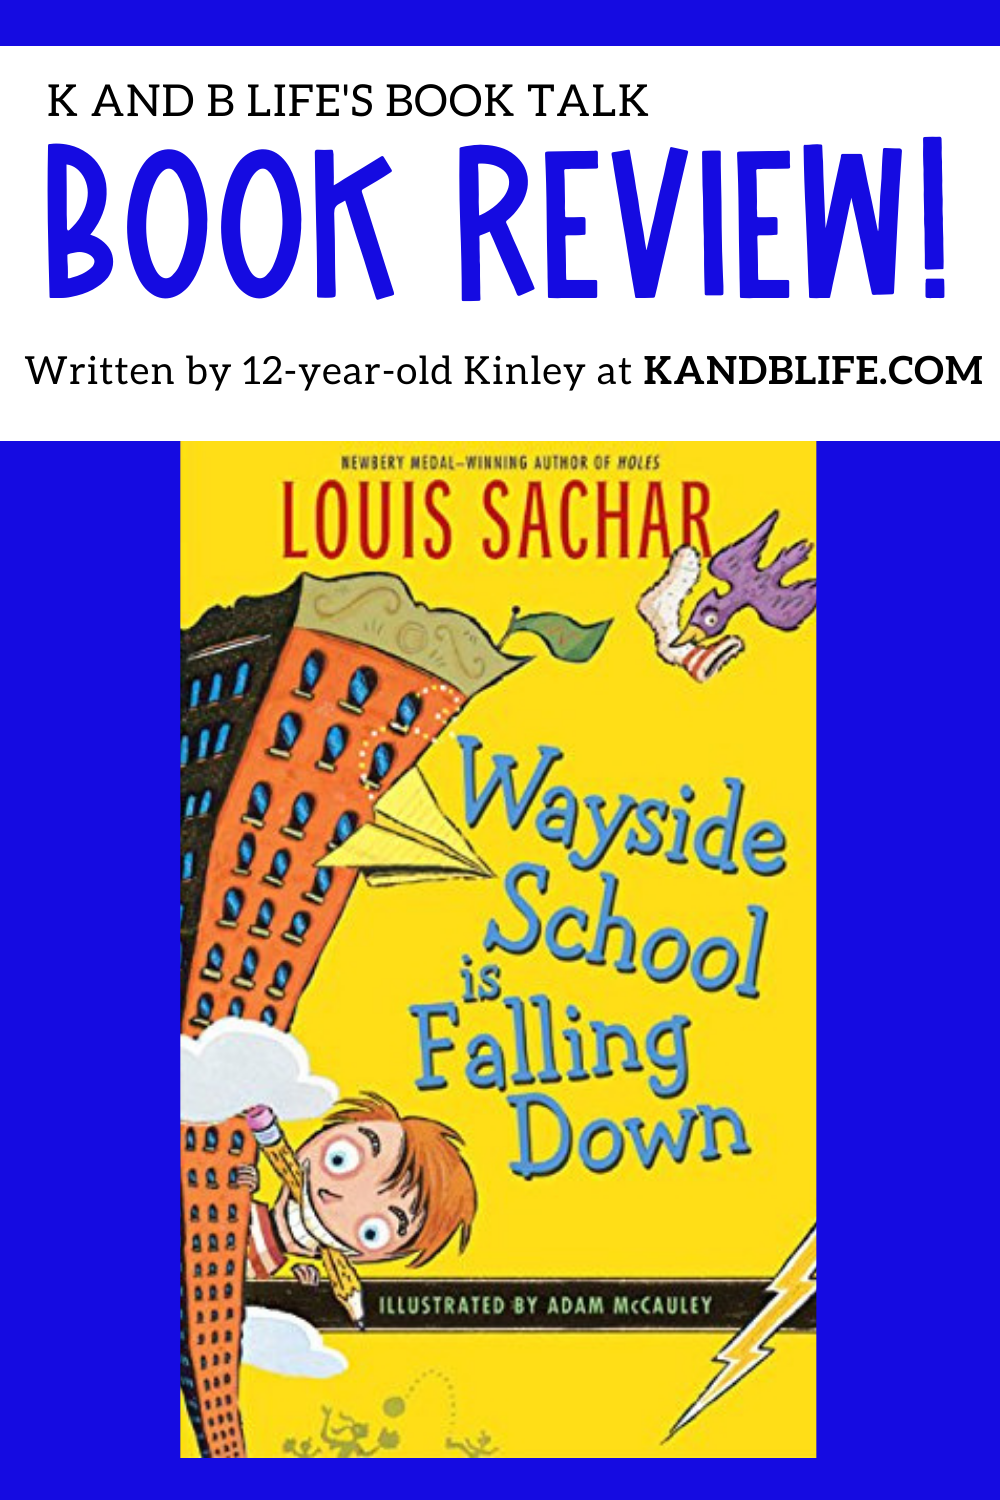 BOOK REVIEW COVER FOR WAYSIDE SCHOOL IS FALLING DOWN. It's blue with the book on it.